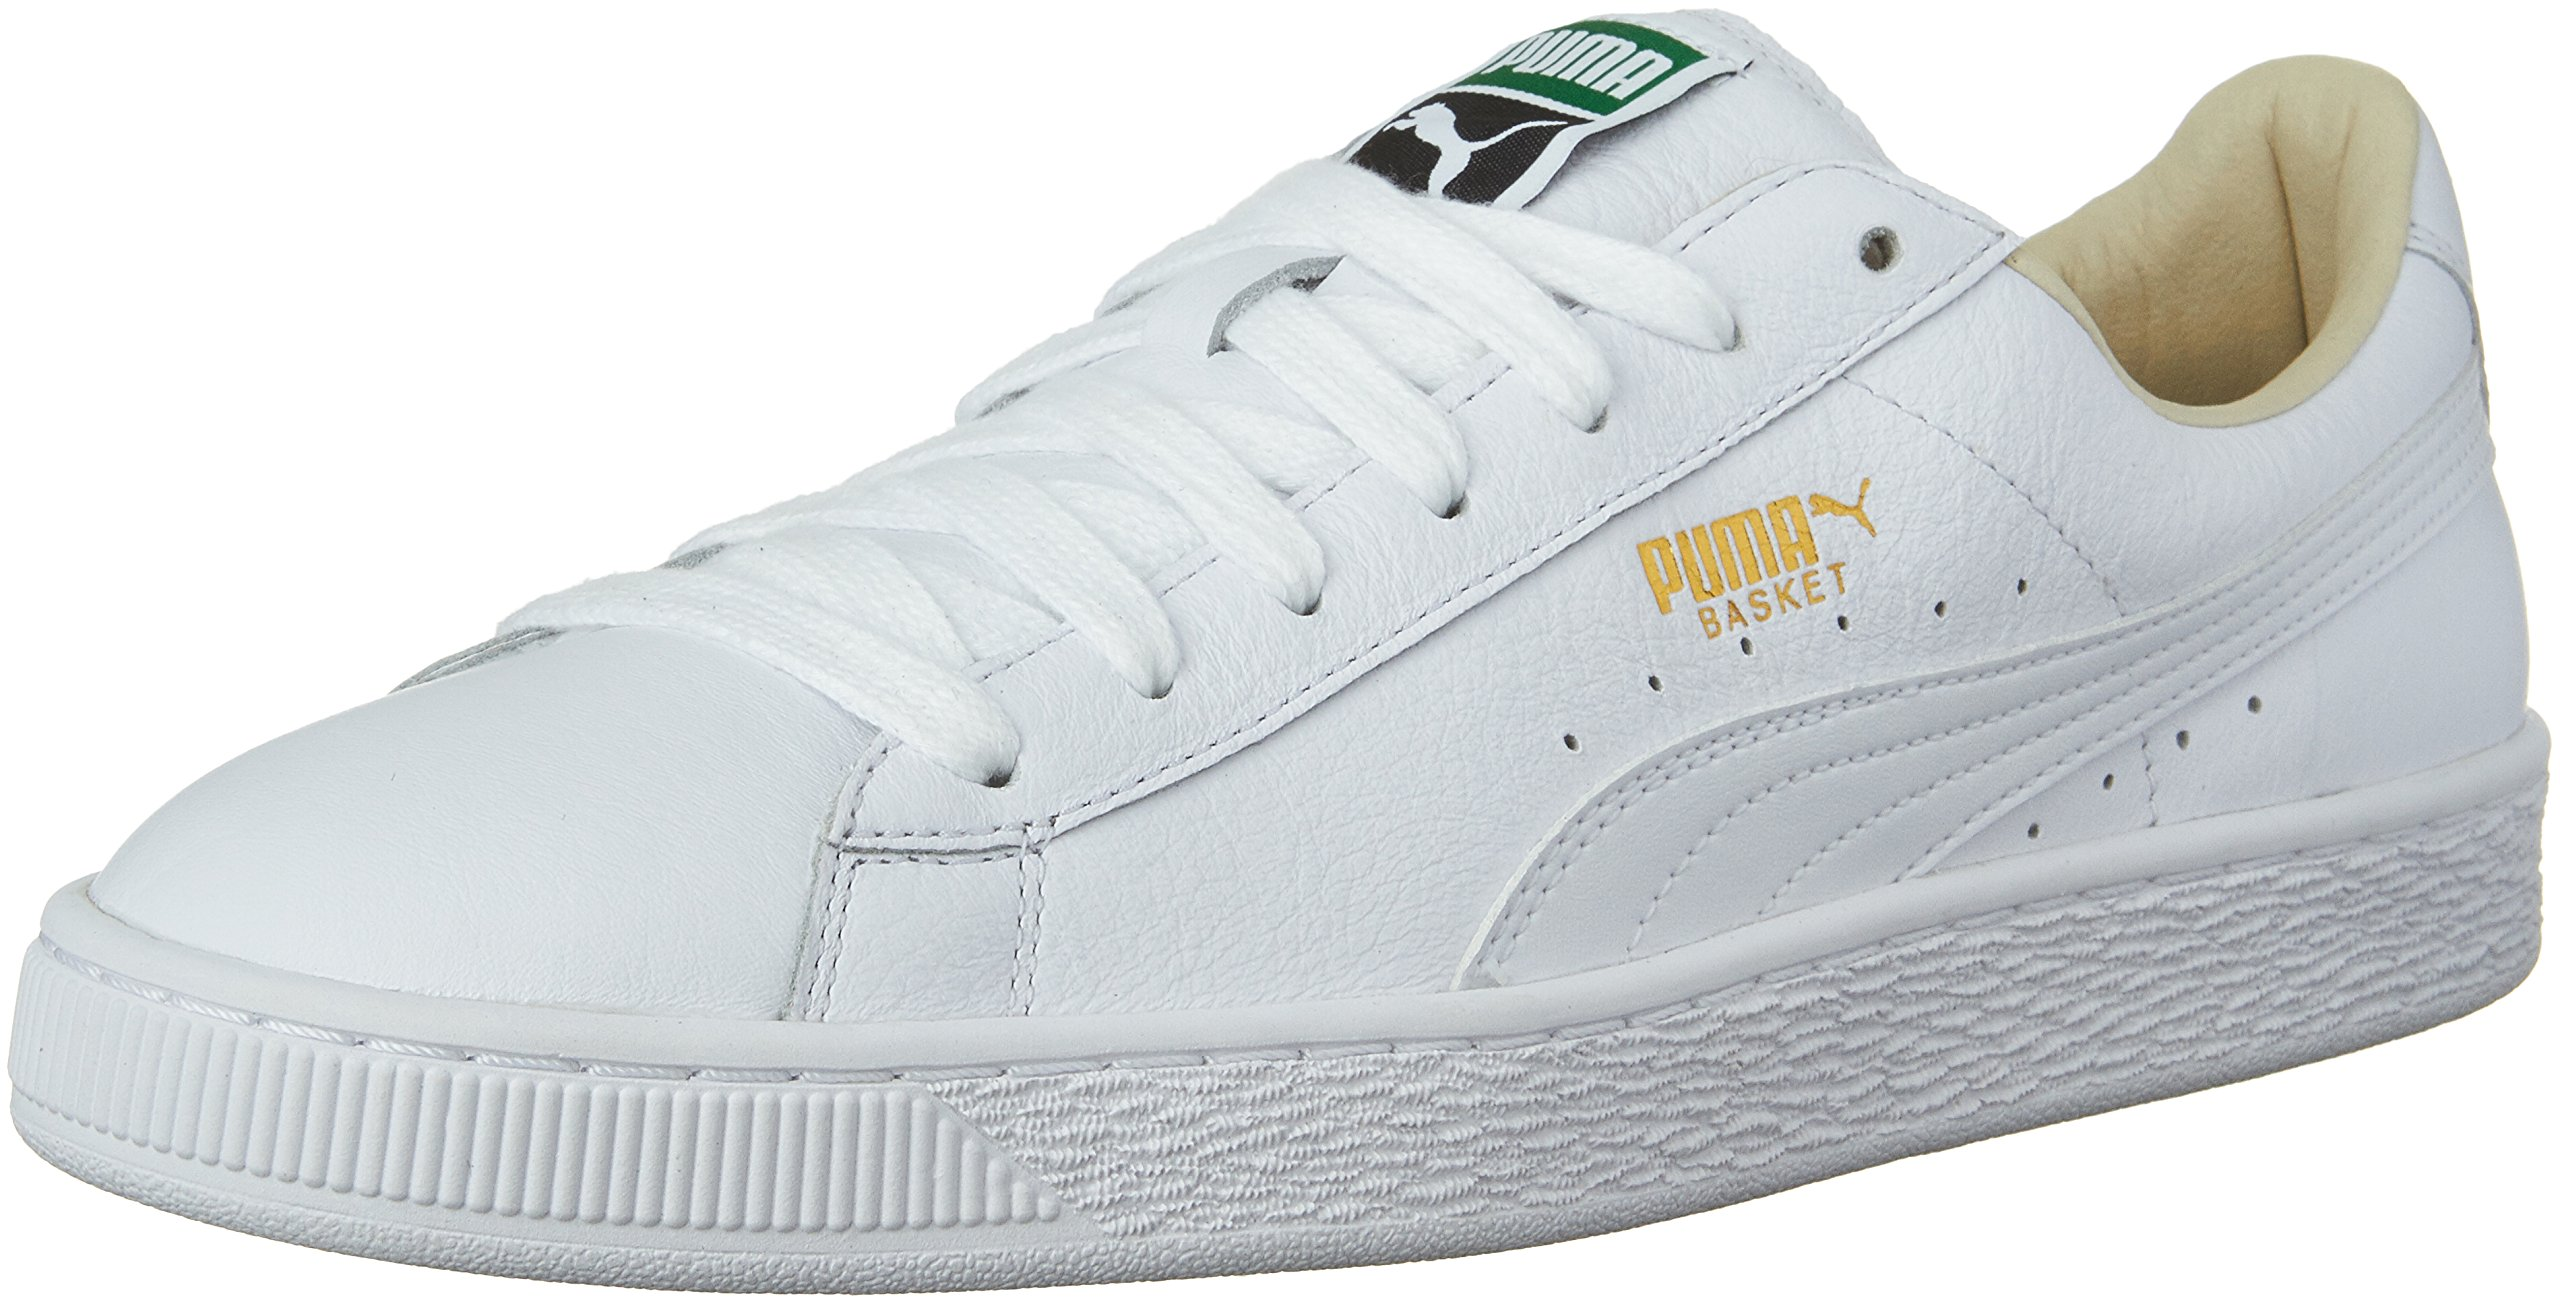 Puma Men's Basket Classic Lfs Fashion Sneaker